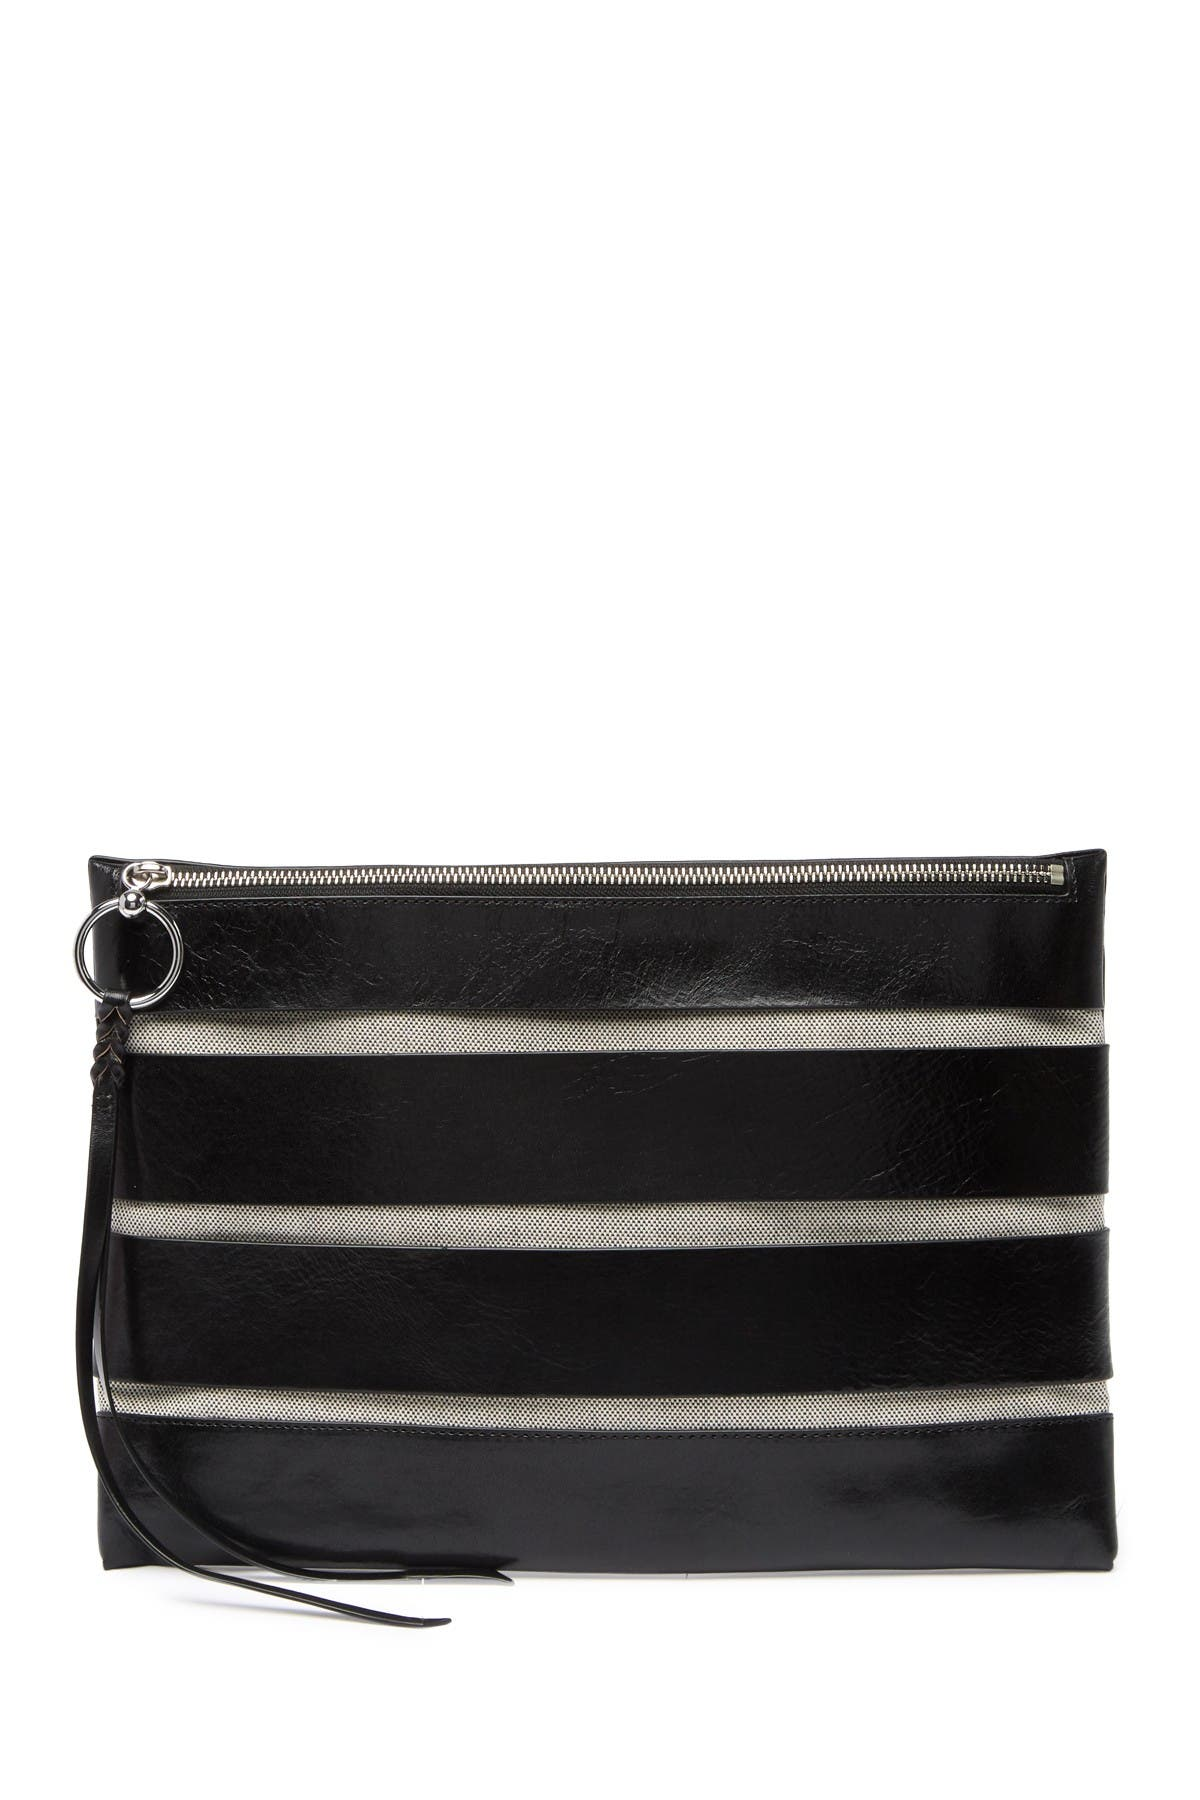 Image of Rebecca Minkoff Cage Leather Clutch